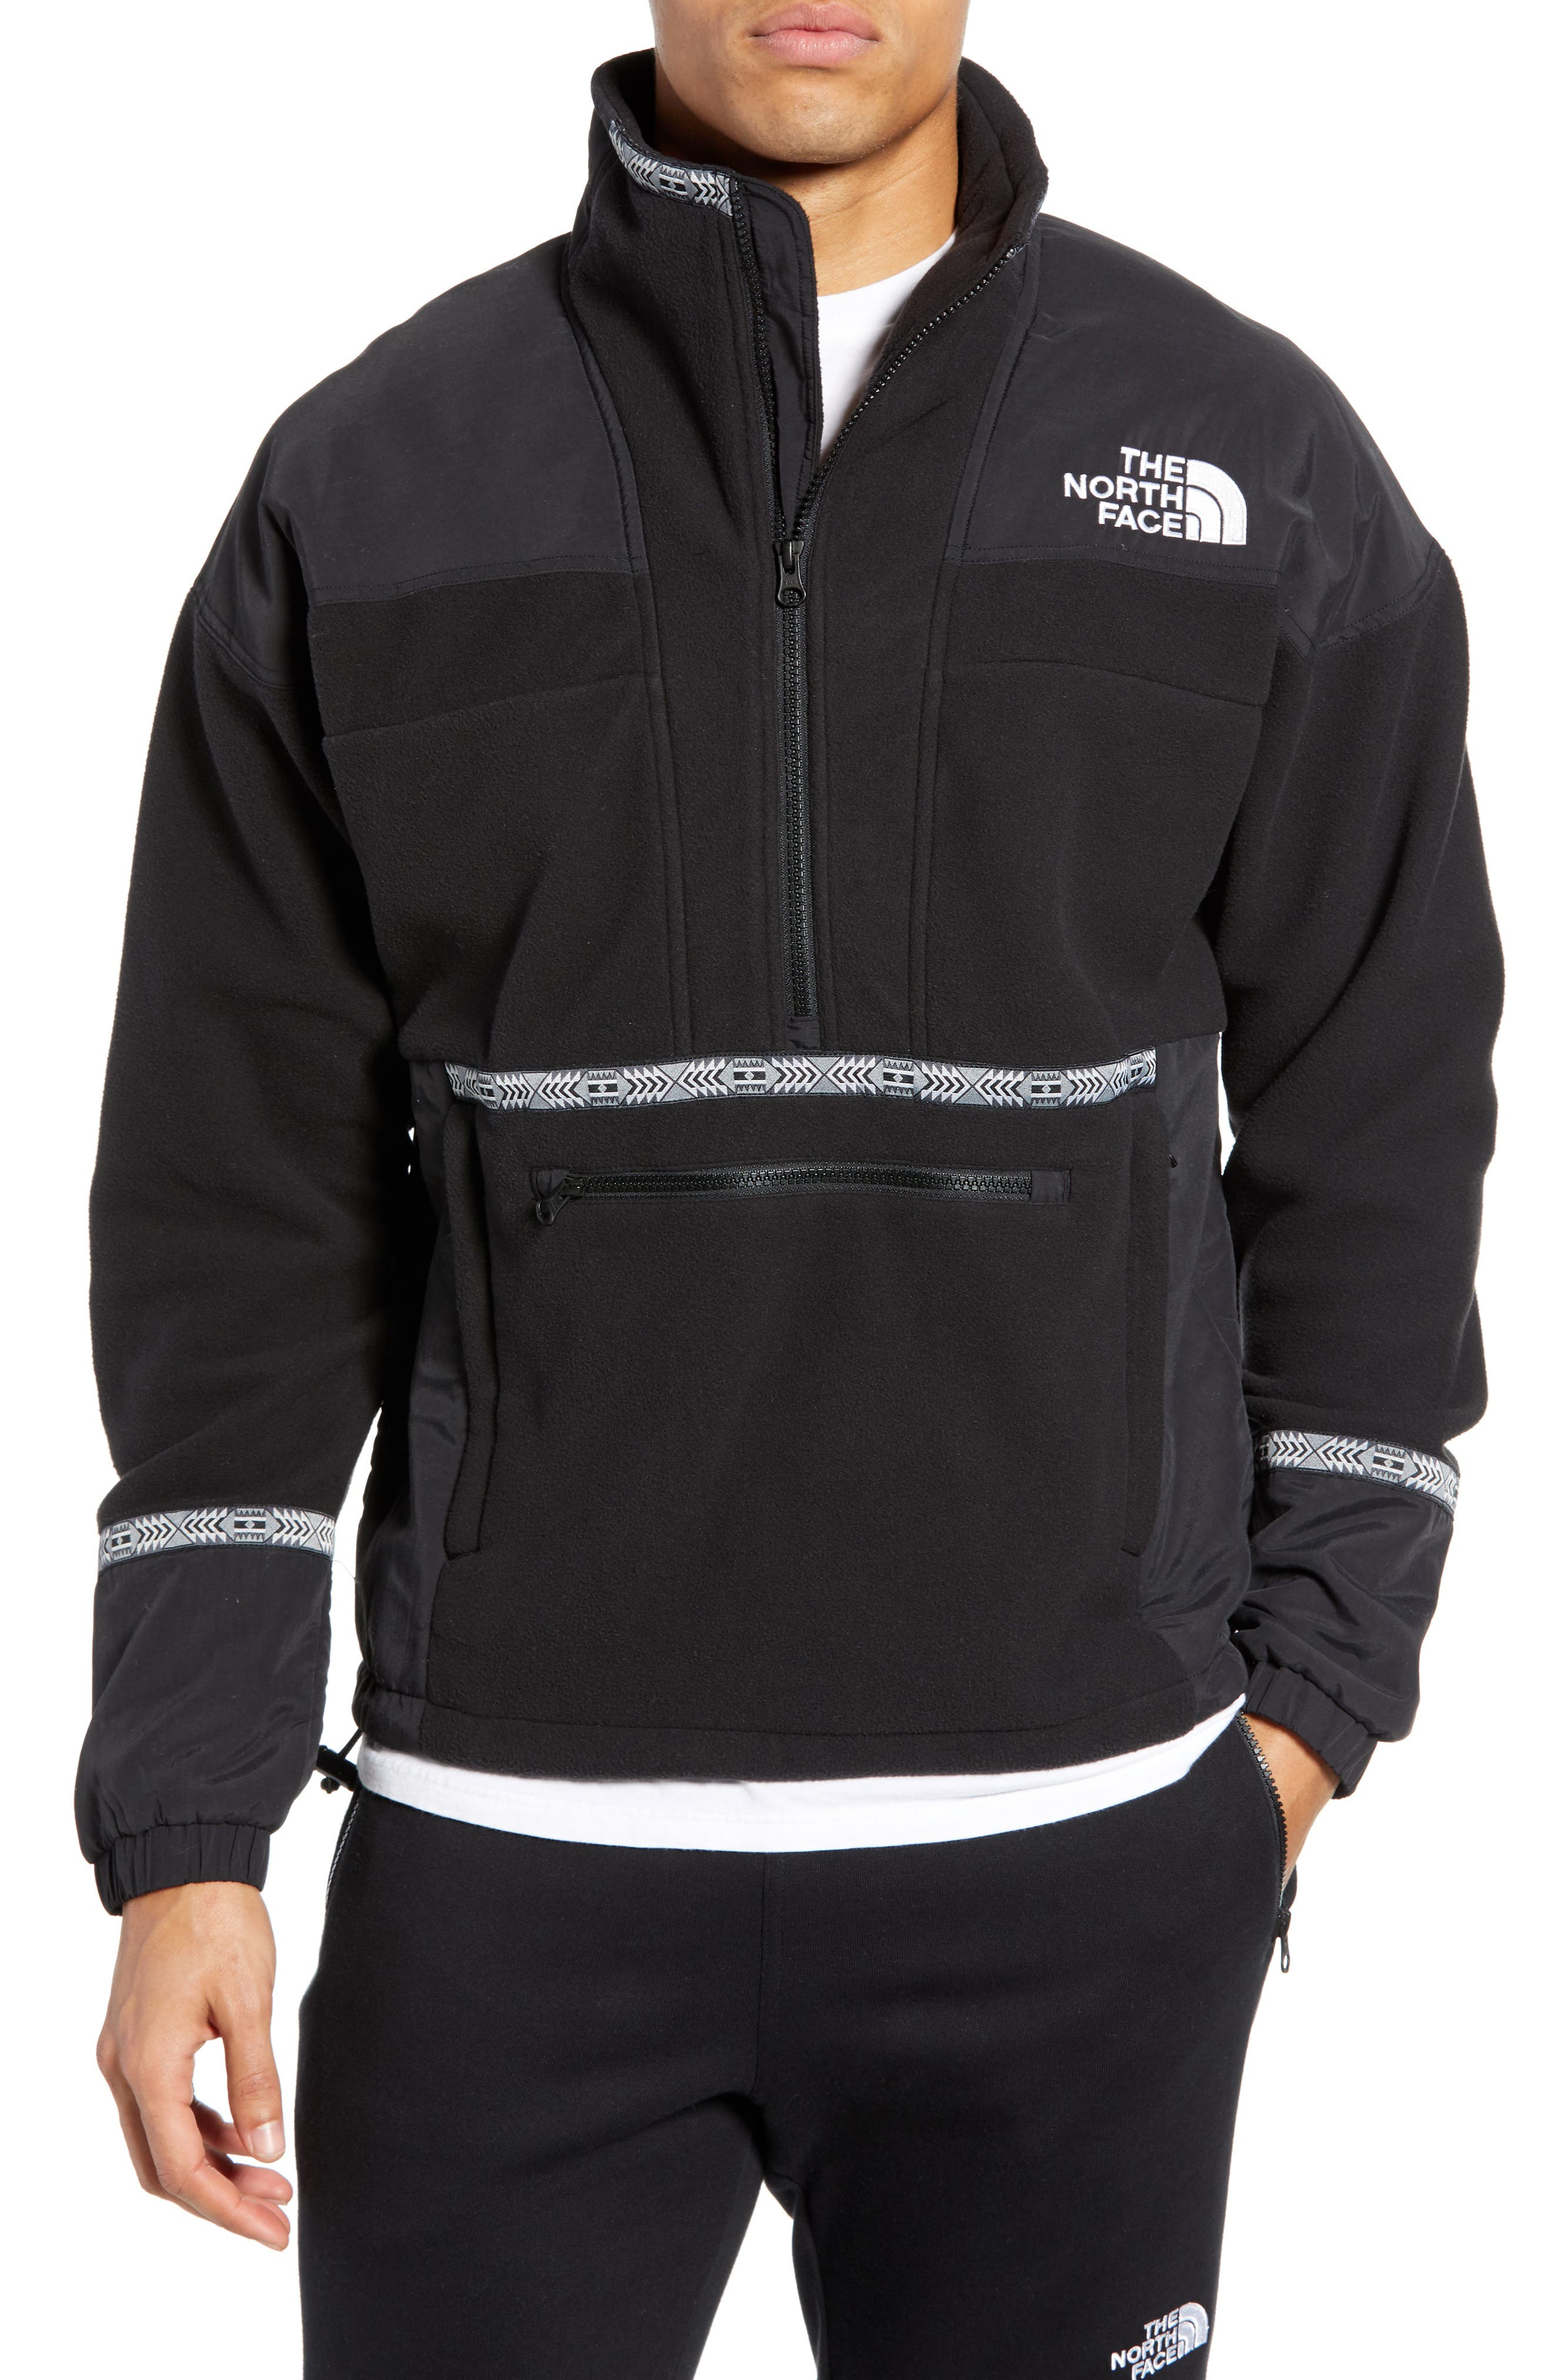 THE NORTH FACE, 1992 Rage Collection Fleece Anorak, Main thumbnail 1, color, 001